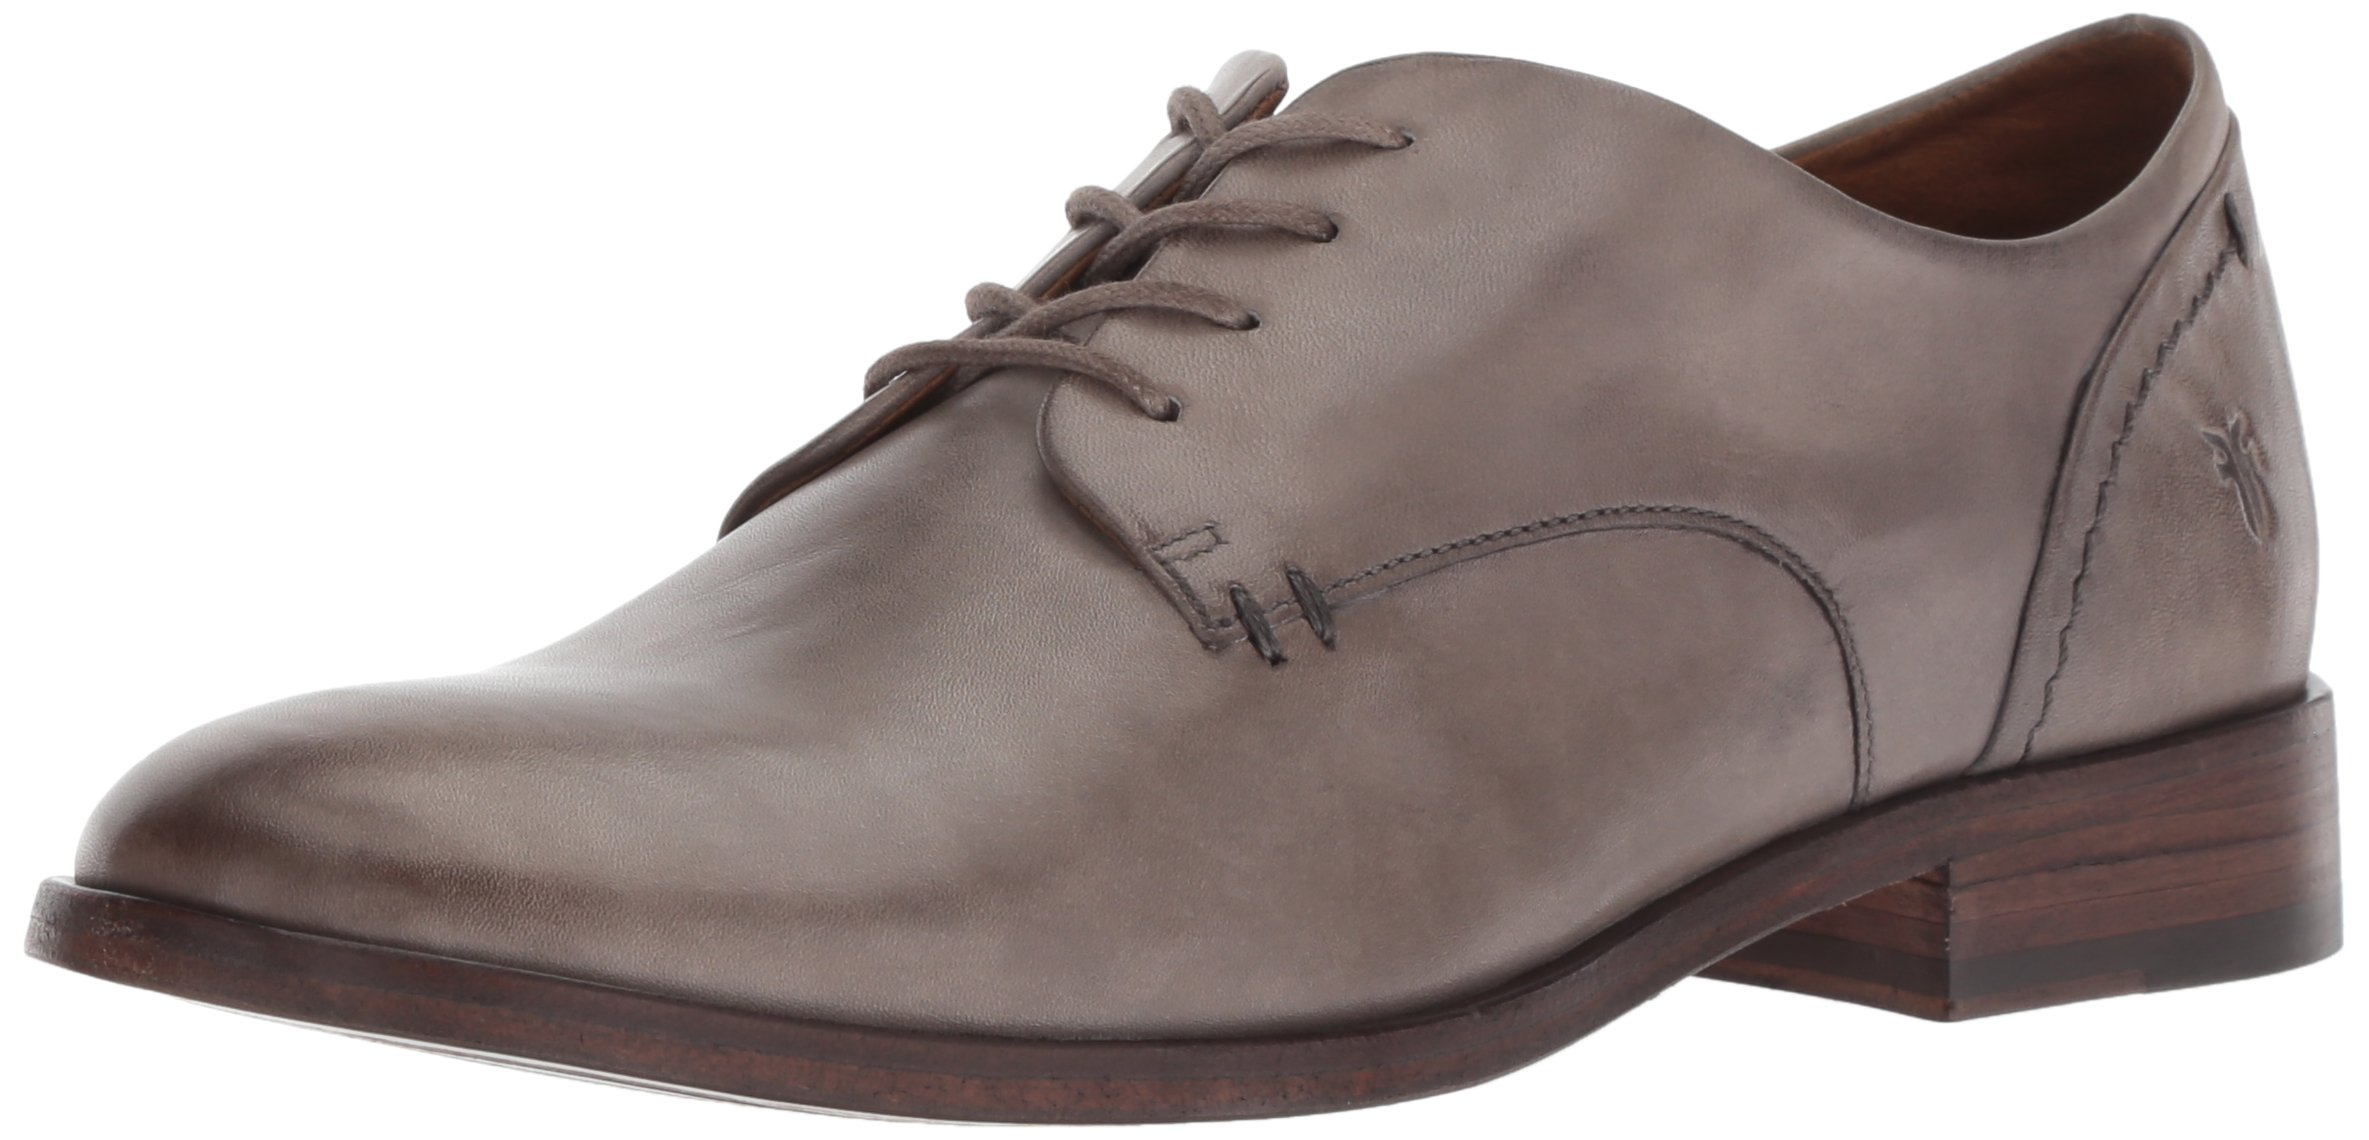 FRYE Women's Elyssa Oxford, Grey 6.5 M US